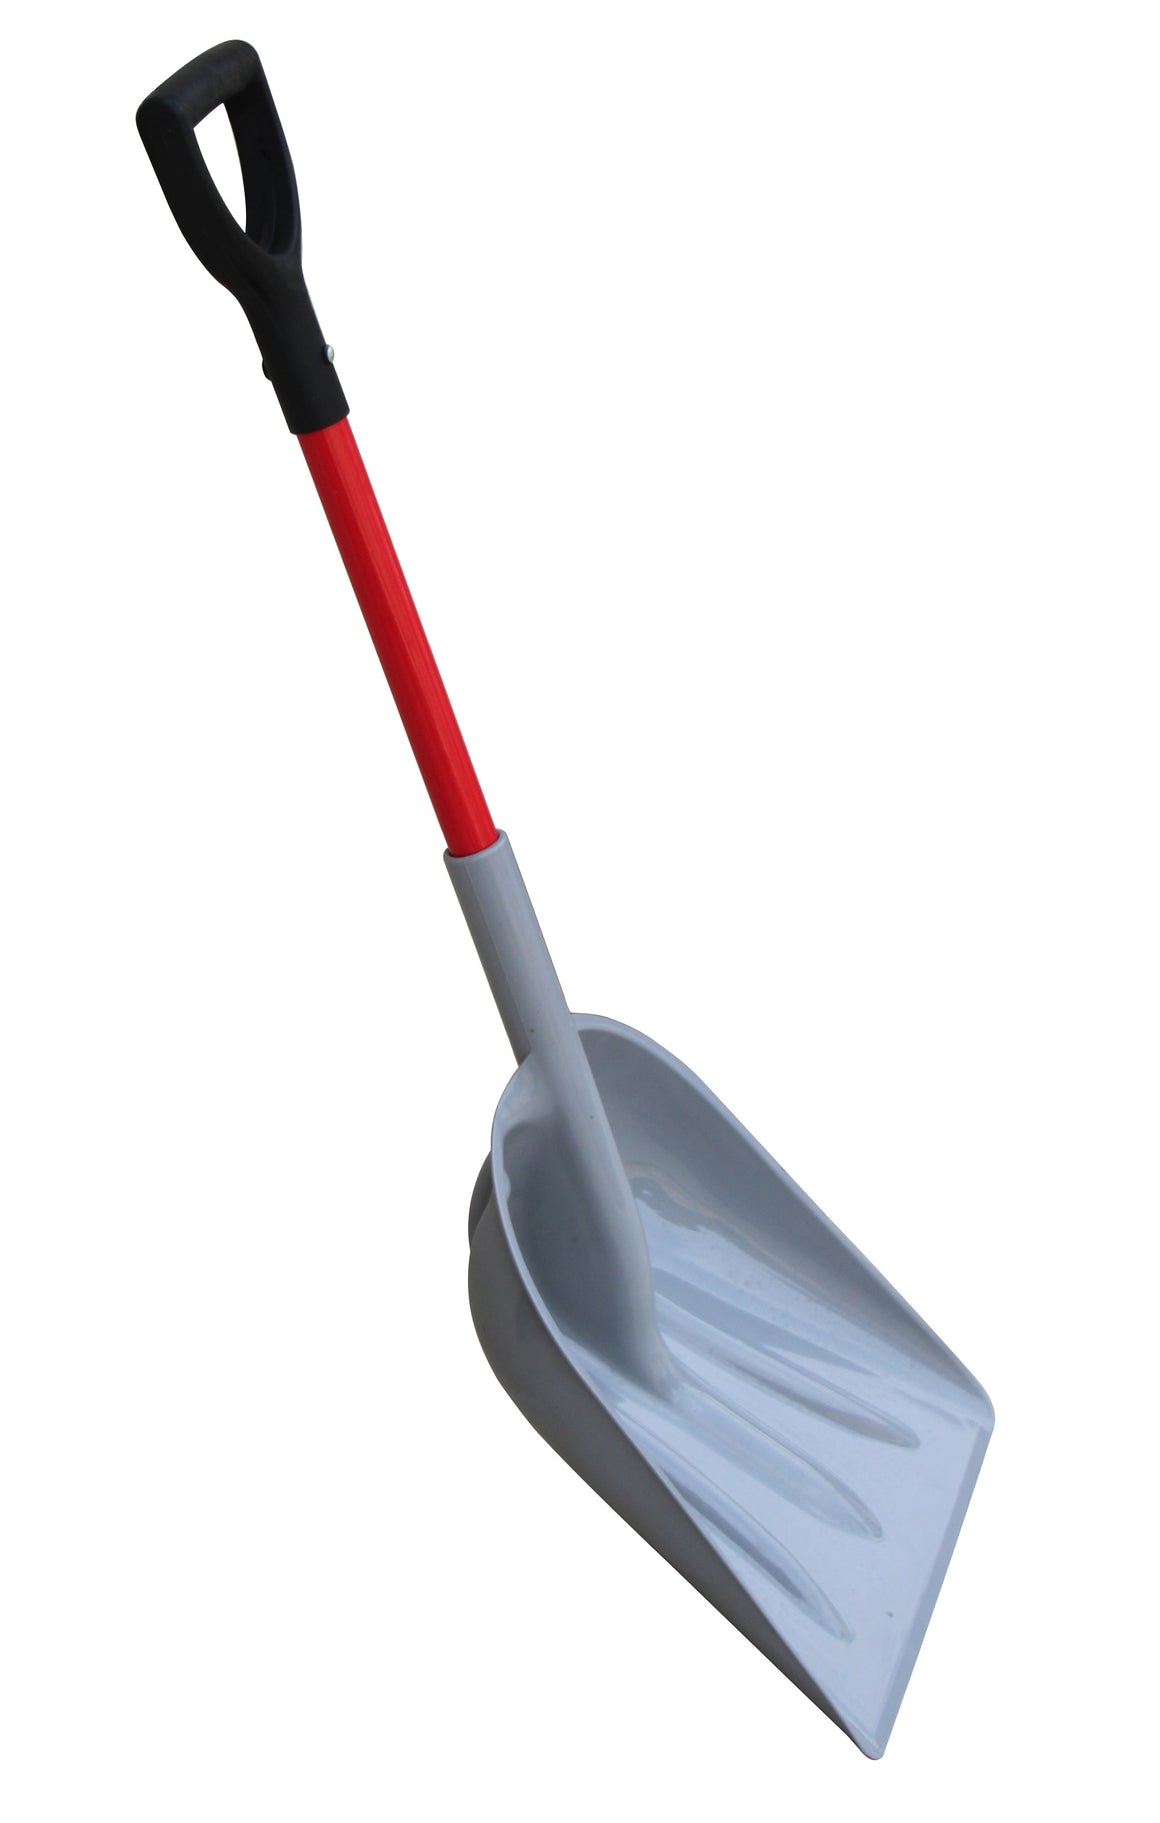 "TABOR TOOLS J218 Mulch/Snow Scoop With Strong Fiberglass Handle, Large Snow Shovel with Comfortable D-Grip 26"" Handle (Snow Shovel)"